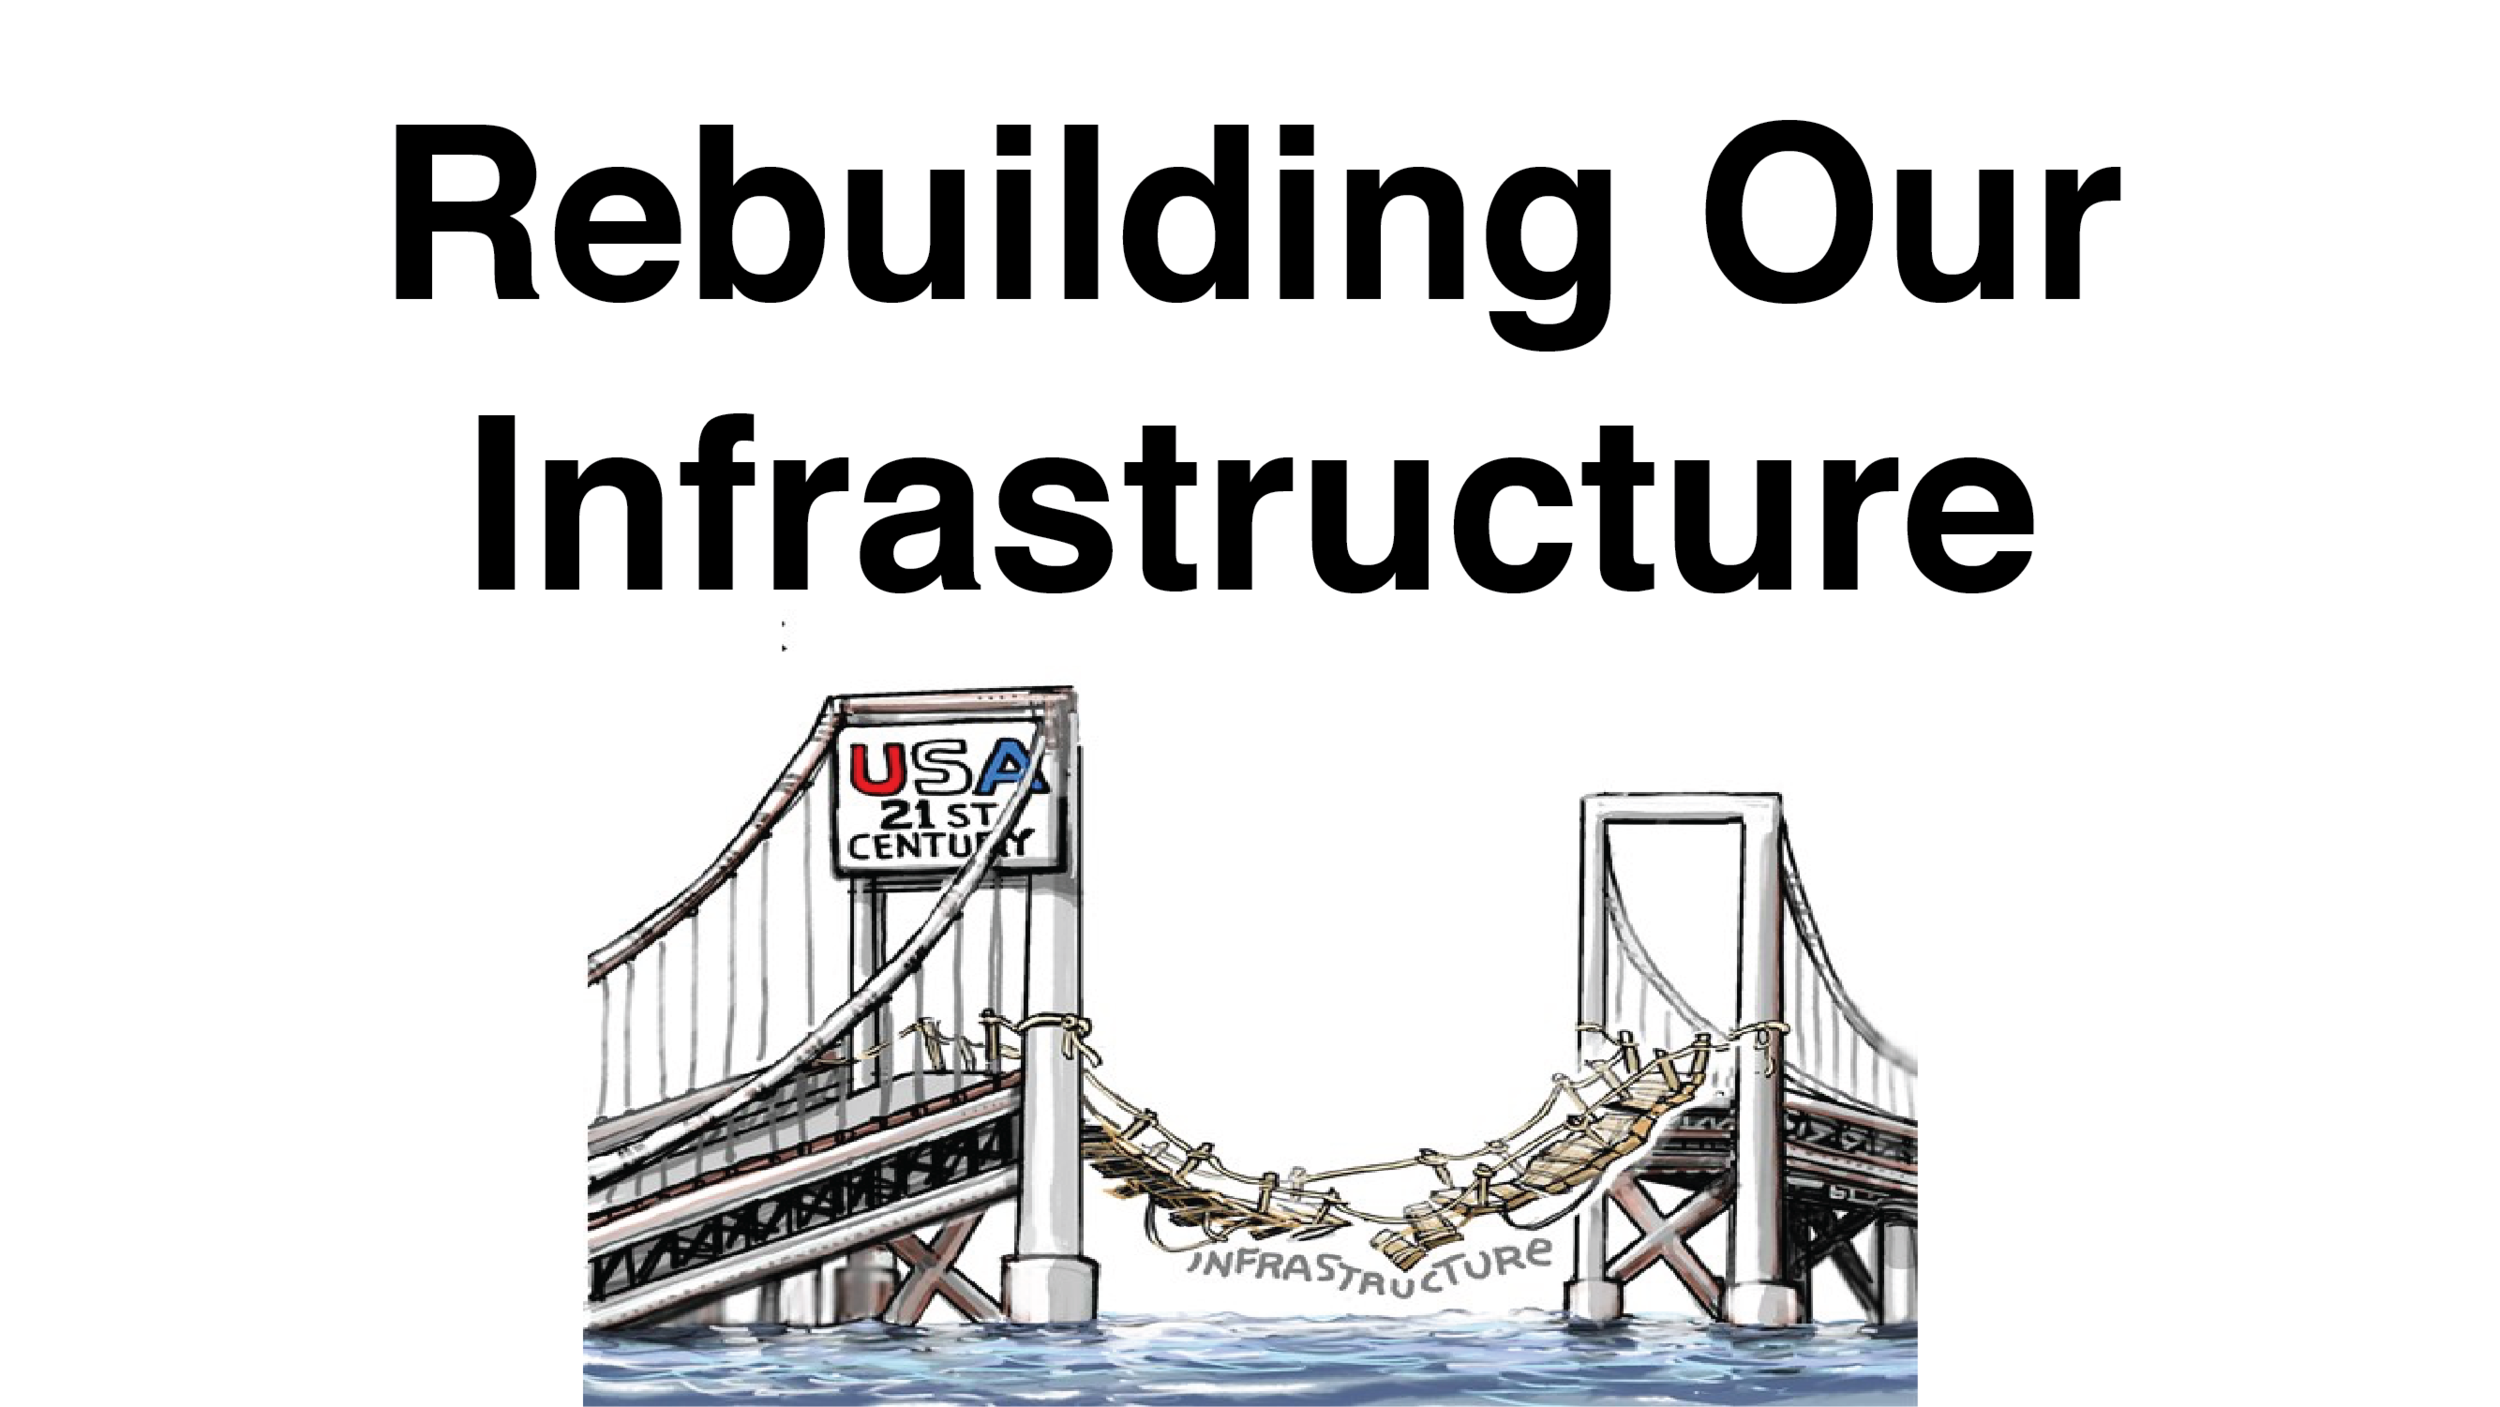 Rebuilding Our Crumbling Infrastructure